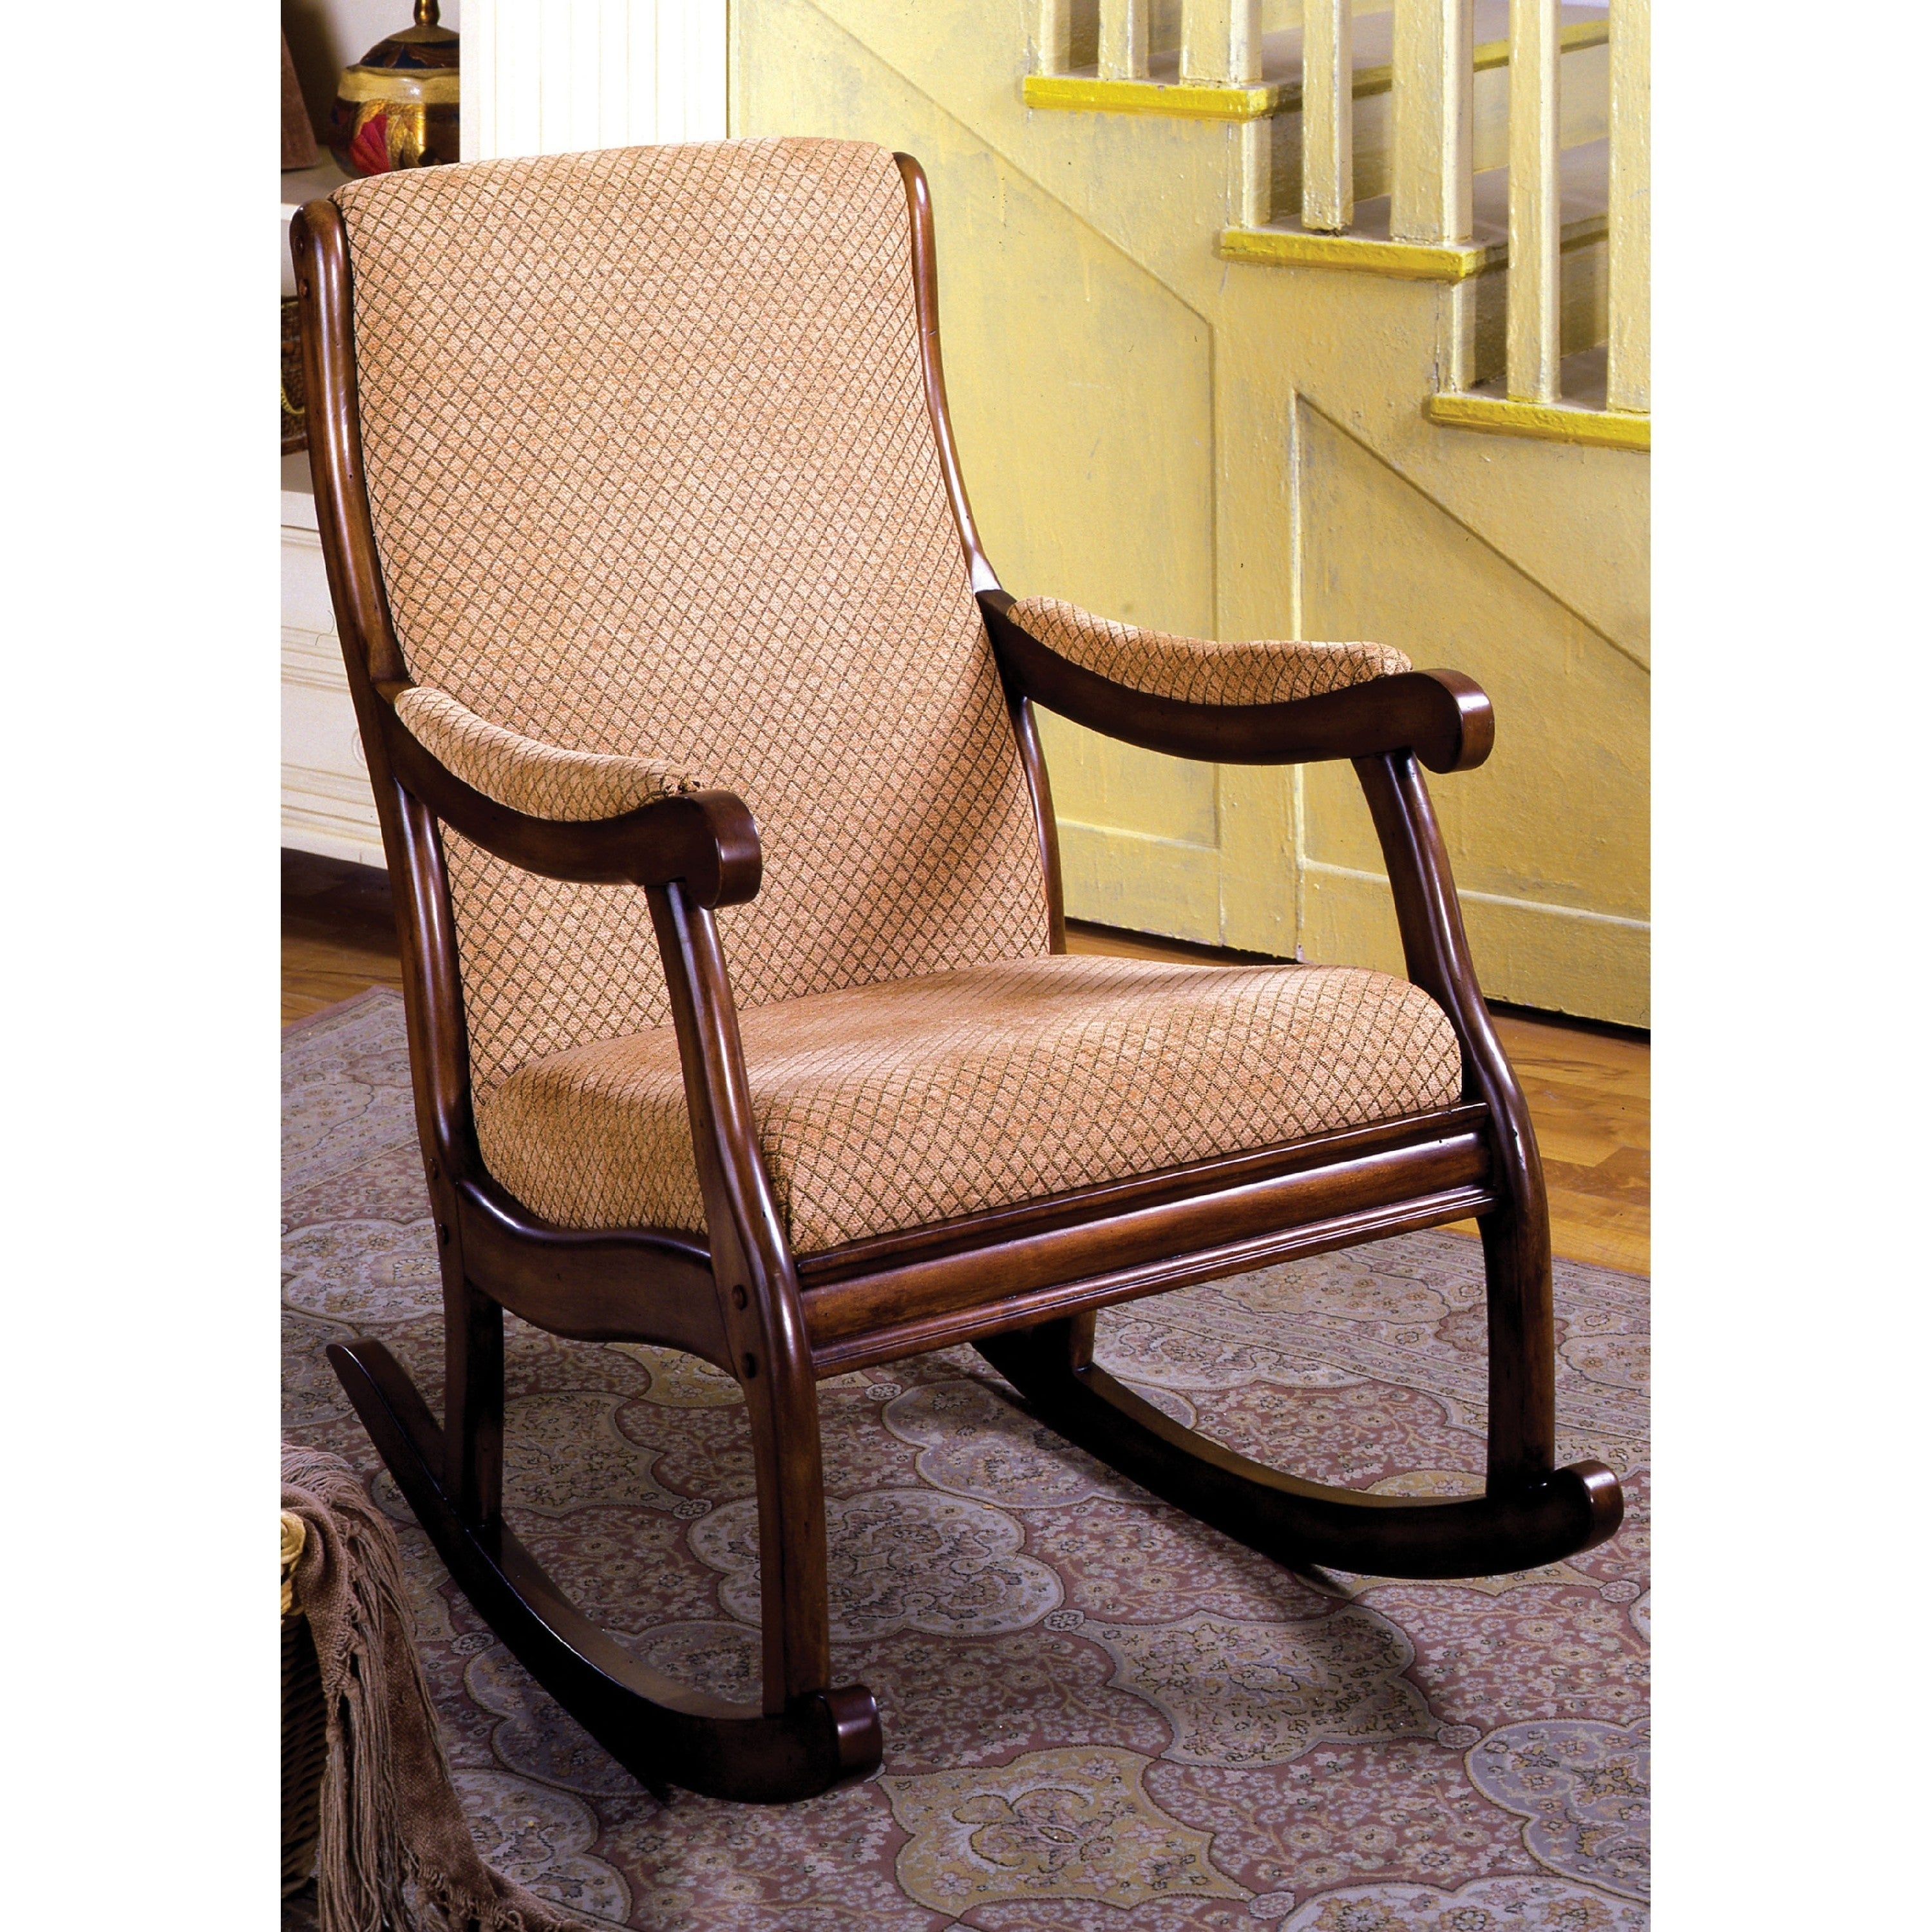 Popular Photo of Antique Transitional Warm Oak Rocking Chairs